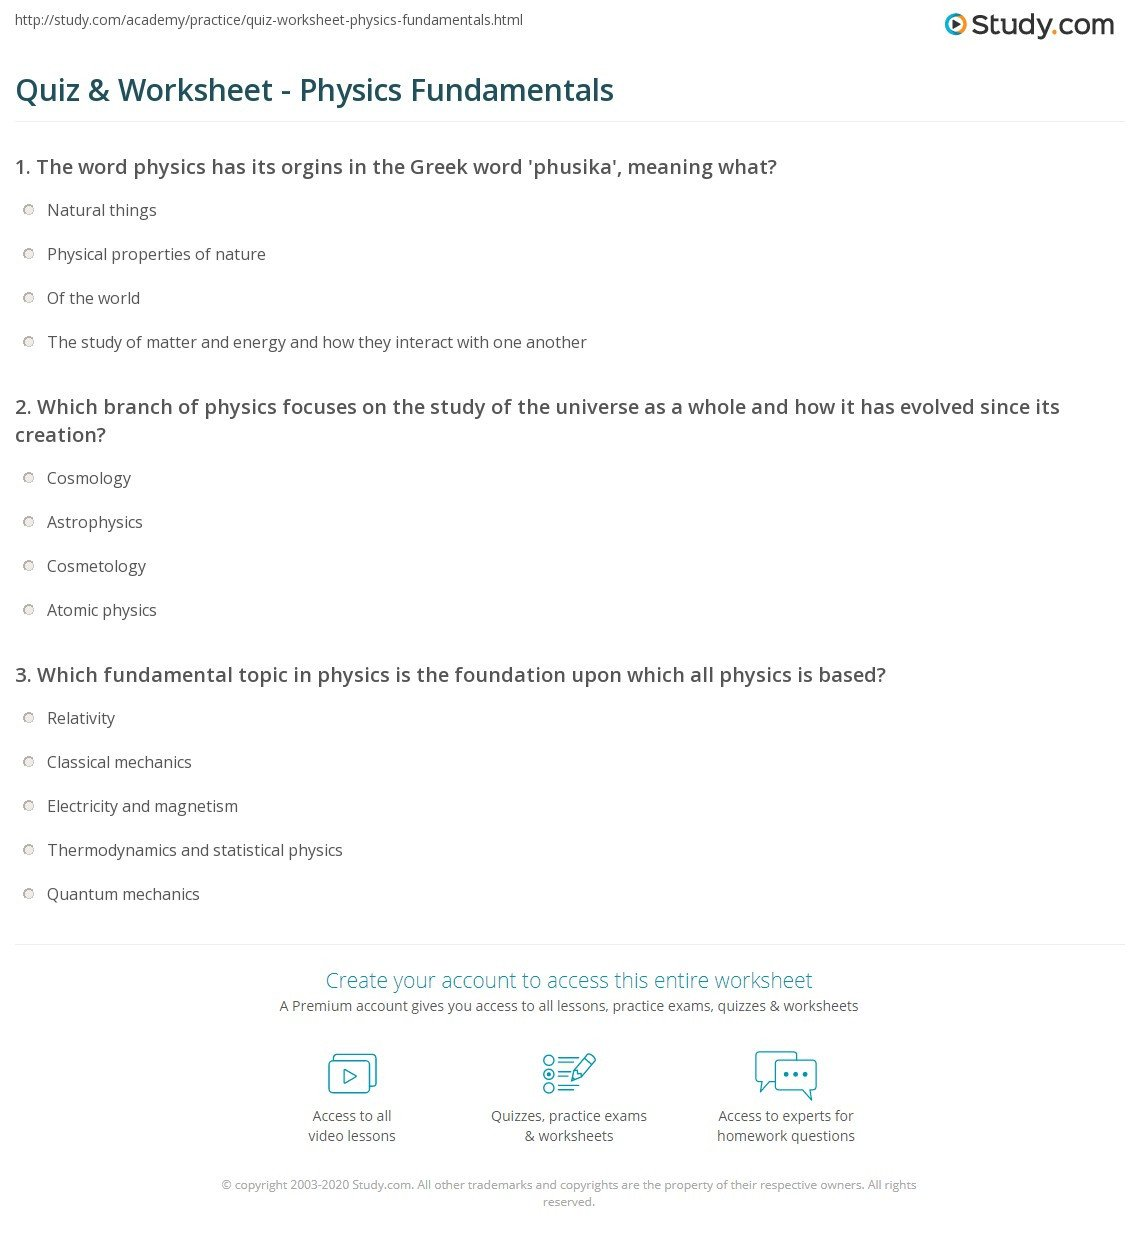 worksheet energy physics fundamentals 6 24 answers